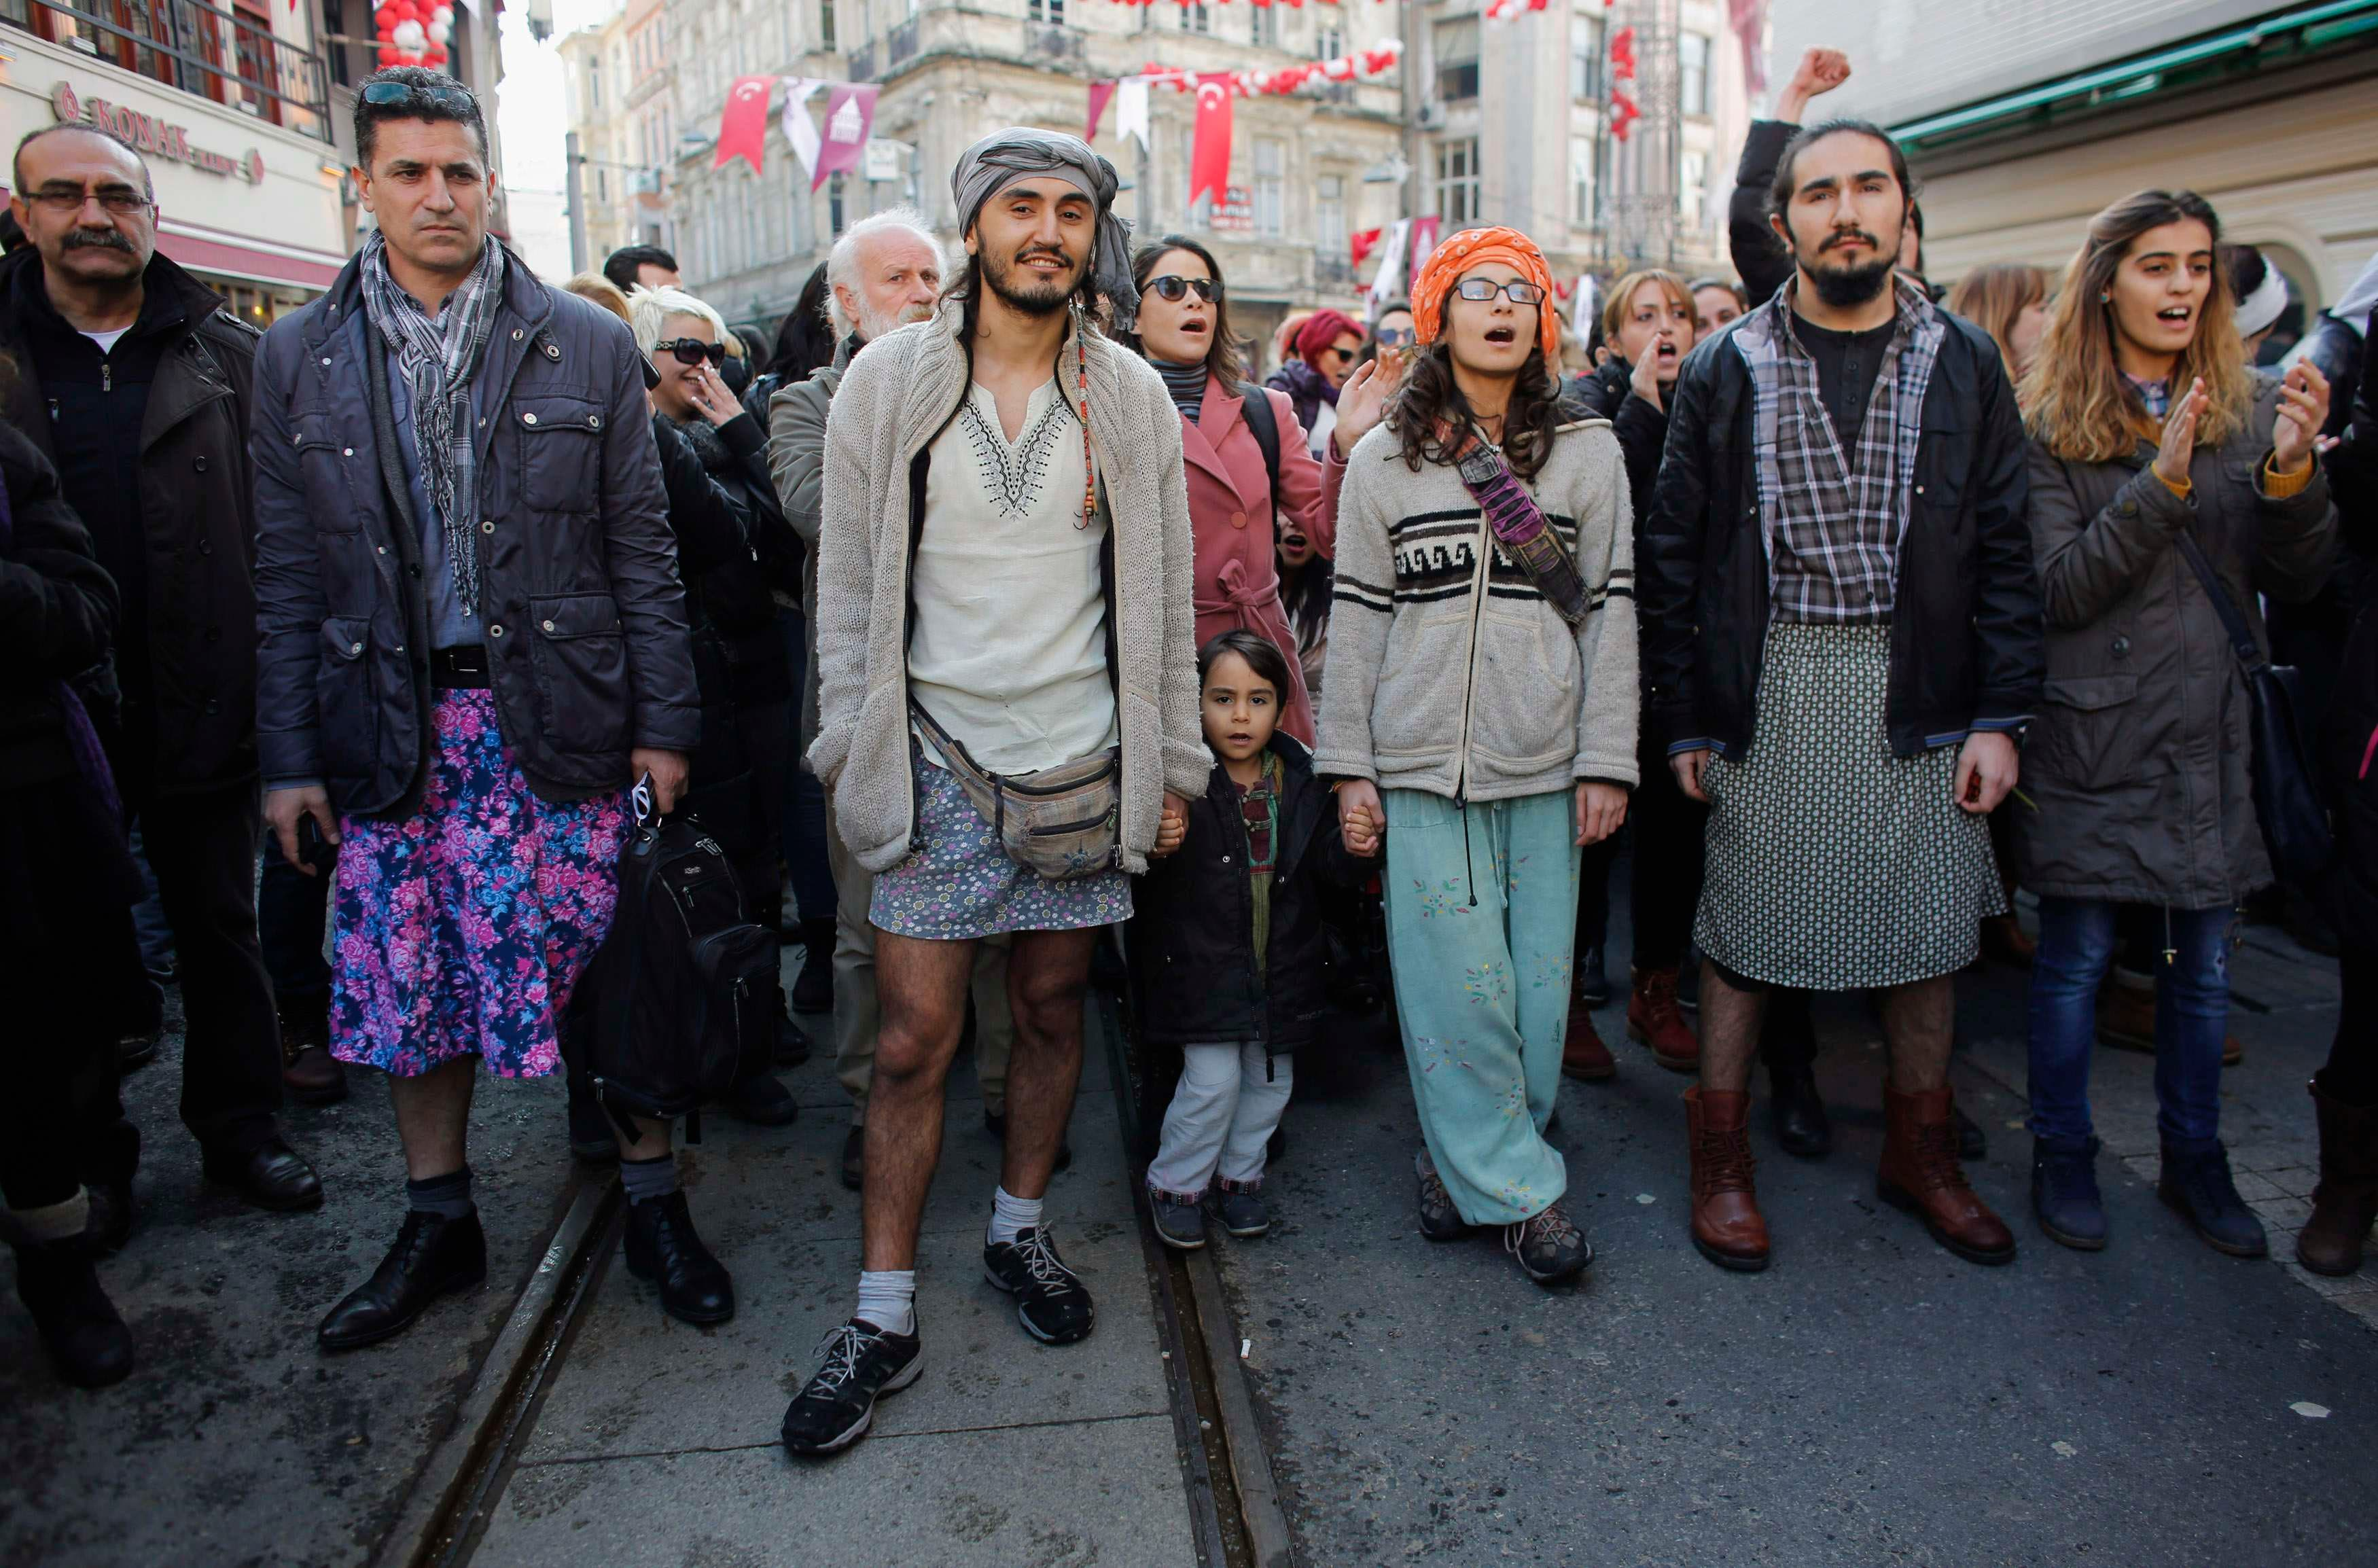 Turkish men wear skirts in protest against domestic violence